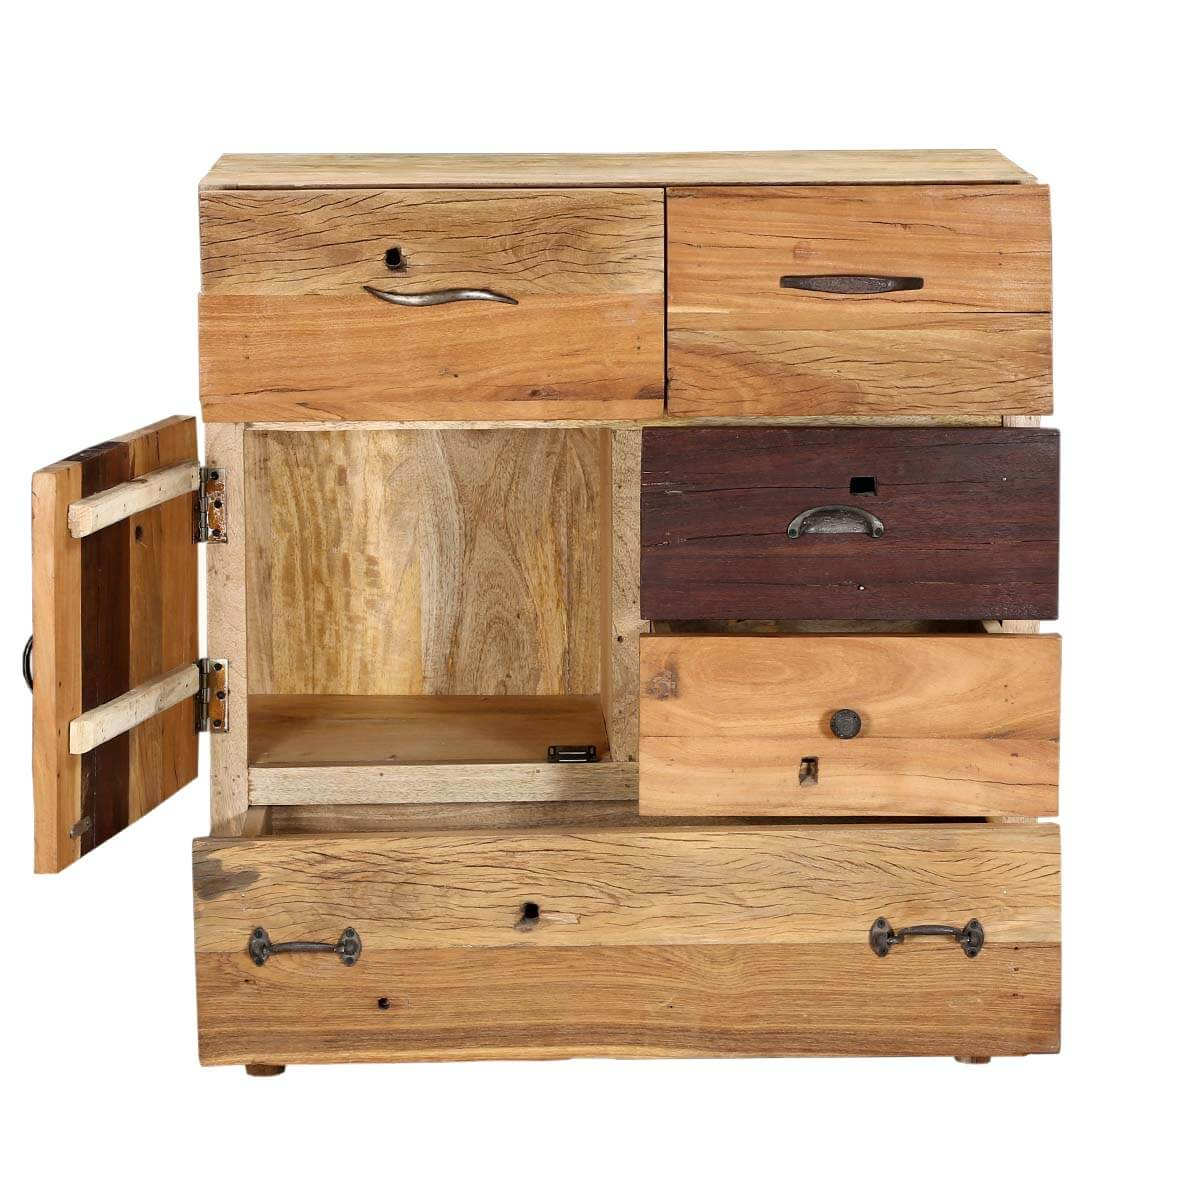 #6B4428  Rack Dessau 35 Solid Wood Modern 5 Drawer Rustic Dresser Bureau Chest with 1200x1200 px of Best Solid Wood Drawer Chest 12001200 image @ avoidforclosure.info